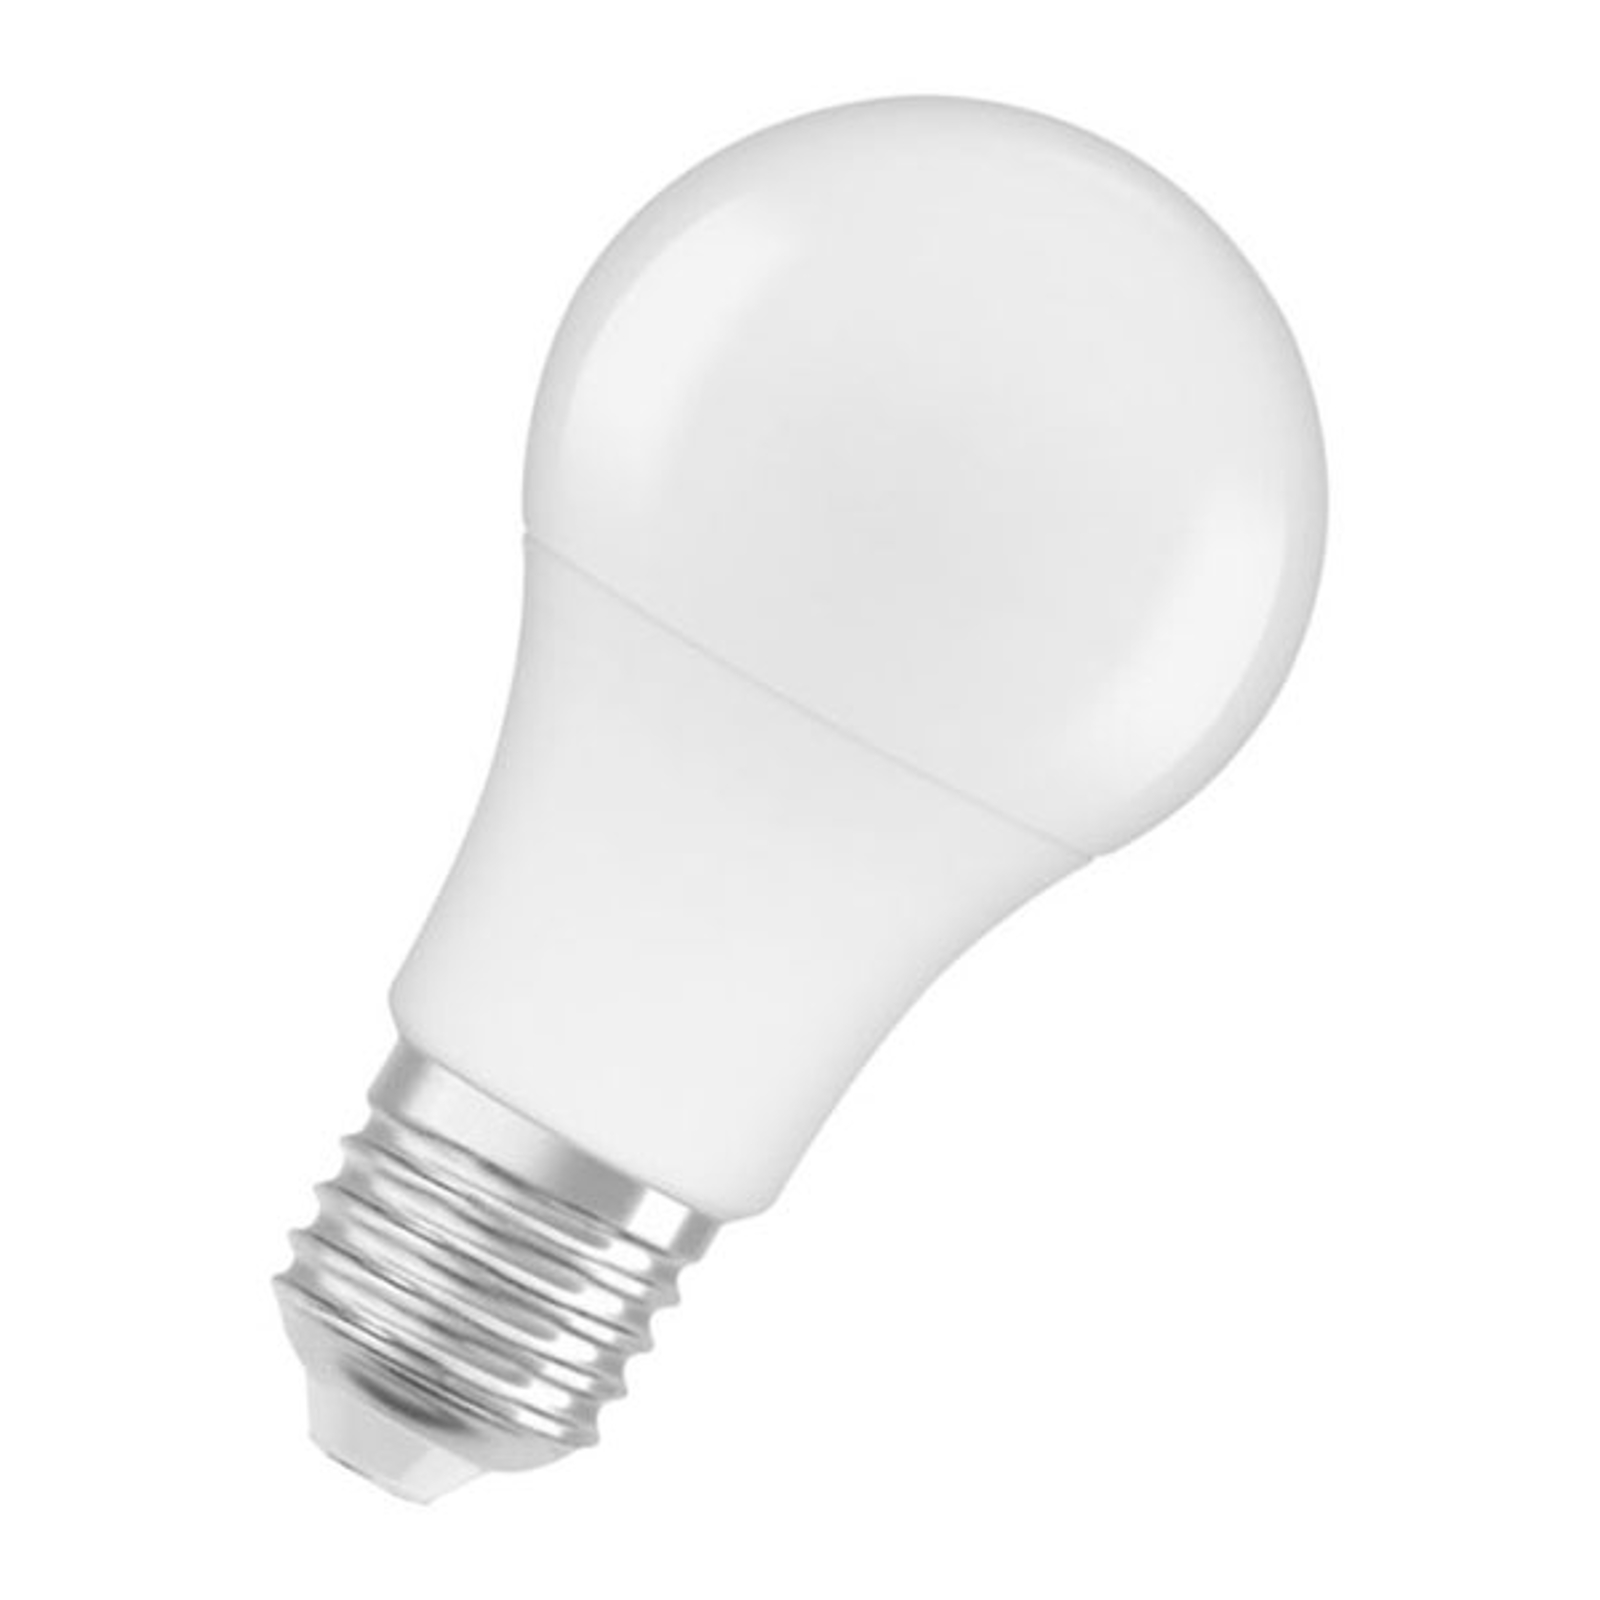 OSRAM LED-Lampe E27 8,5W 840 Star A60, matt